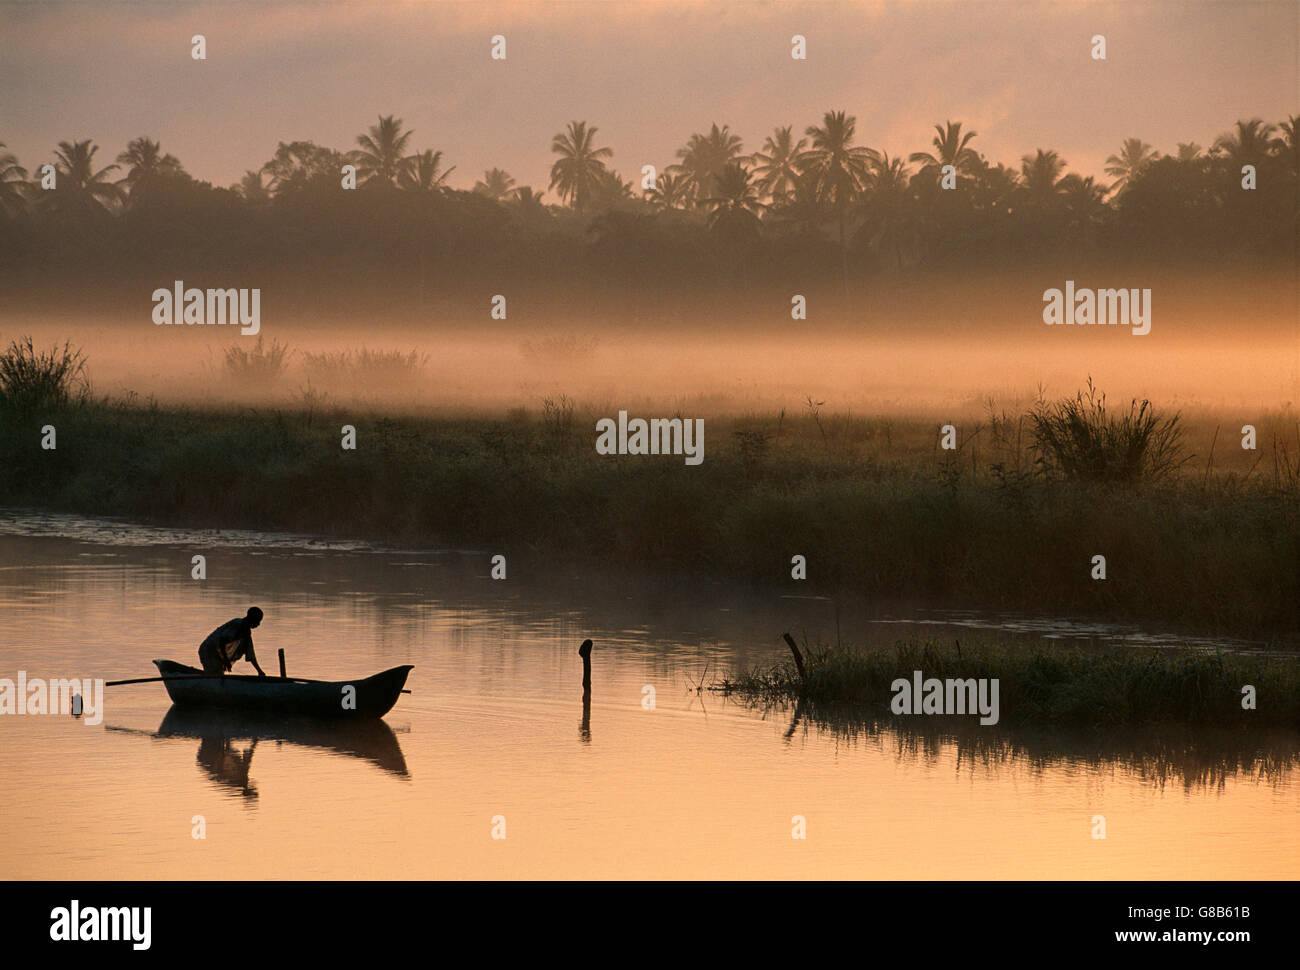 Mozambique Fisherman - Stock Image